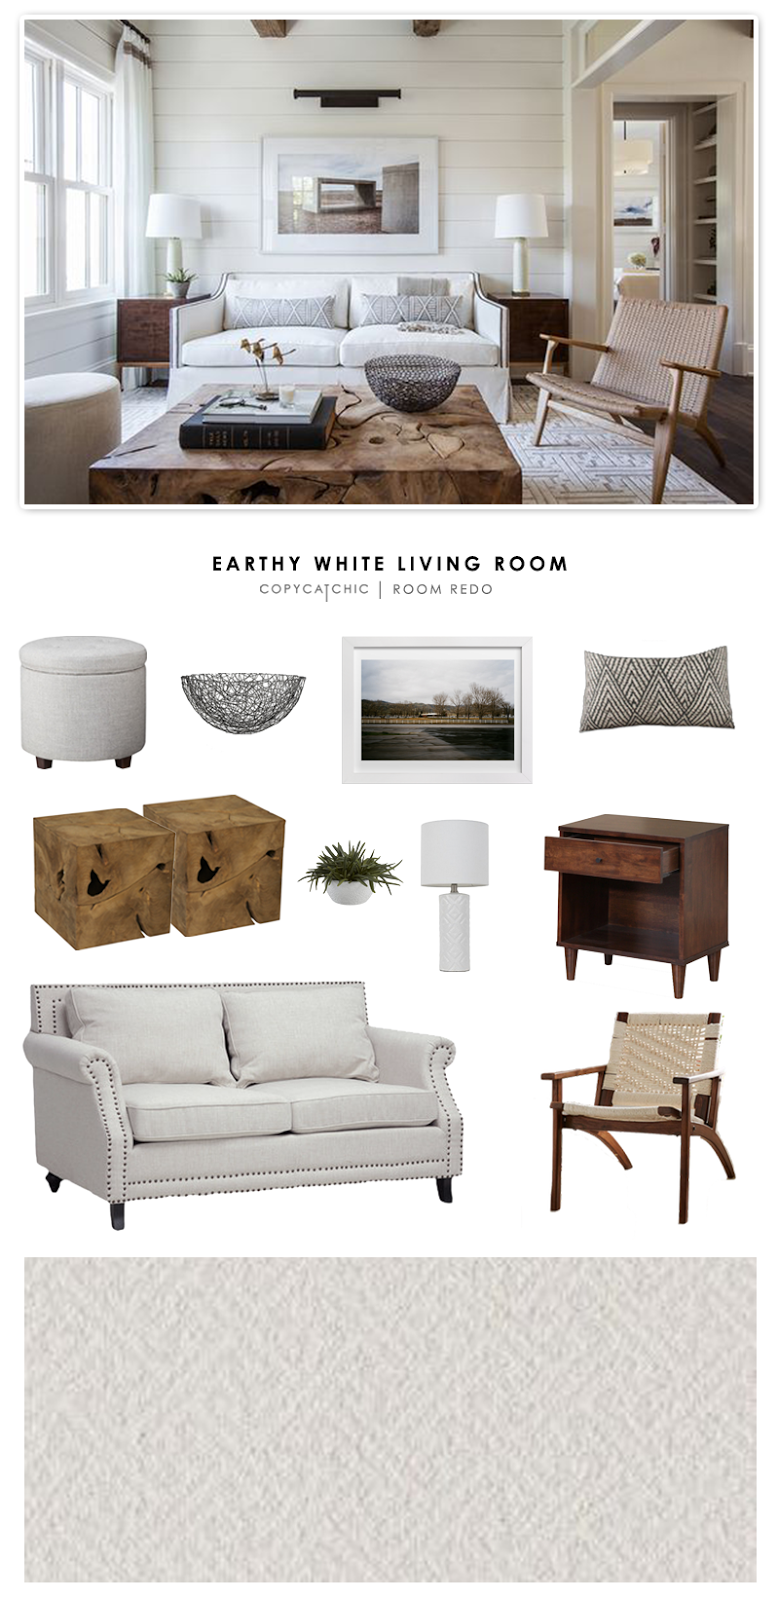 Copy cat chic room redo earthy white living room for Copy design